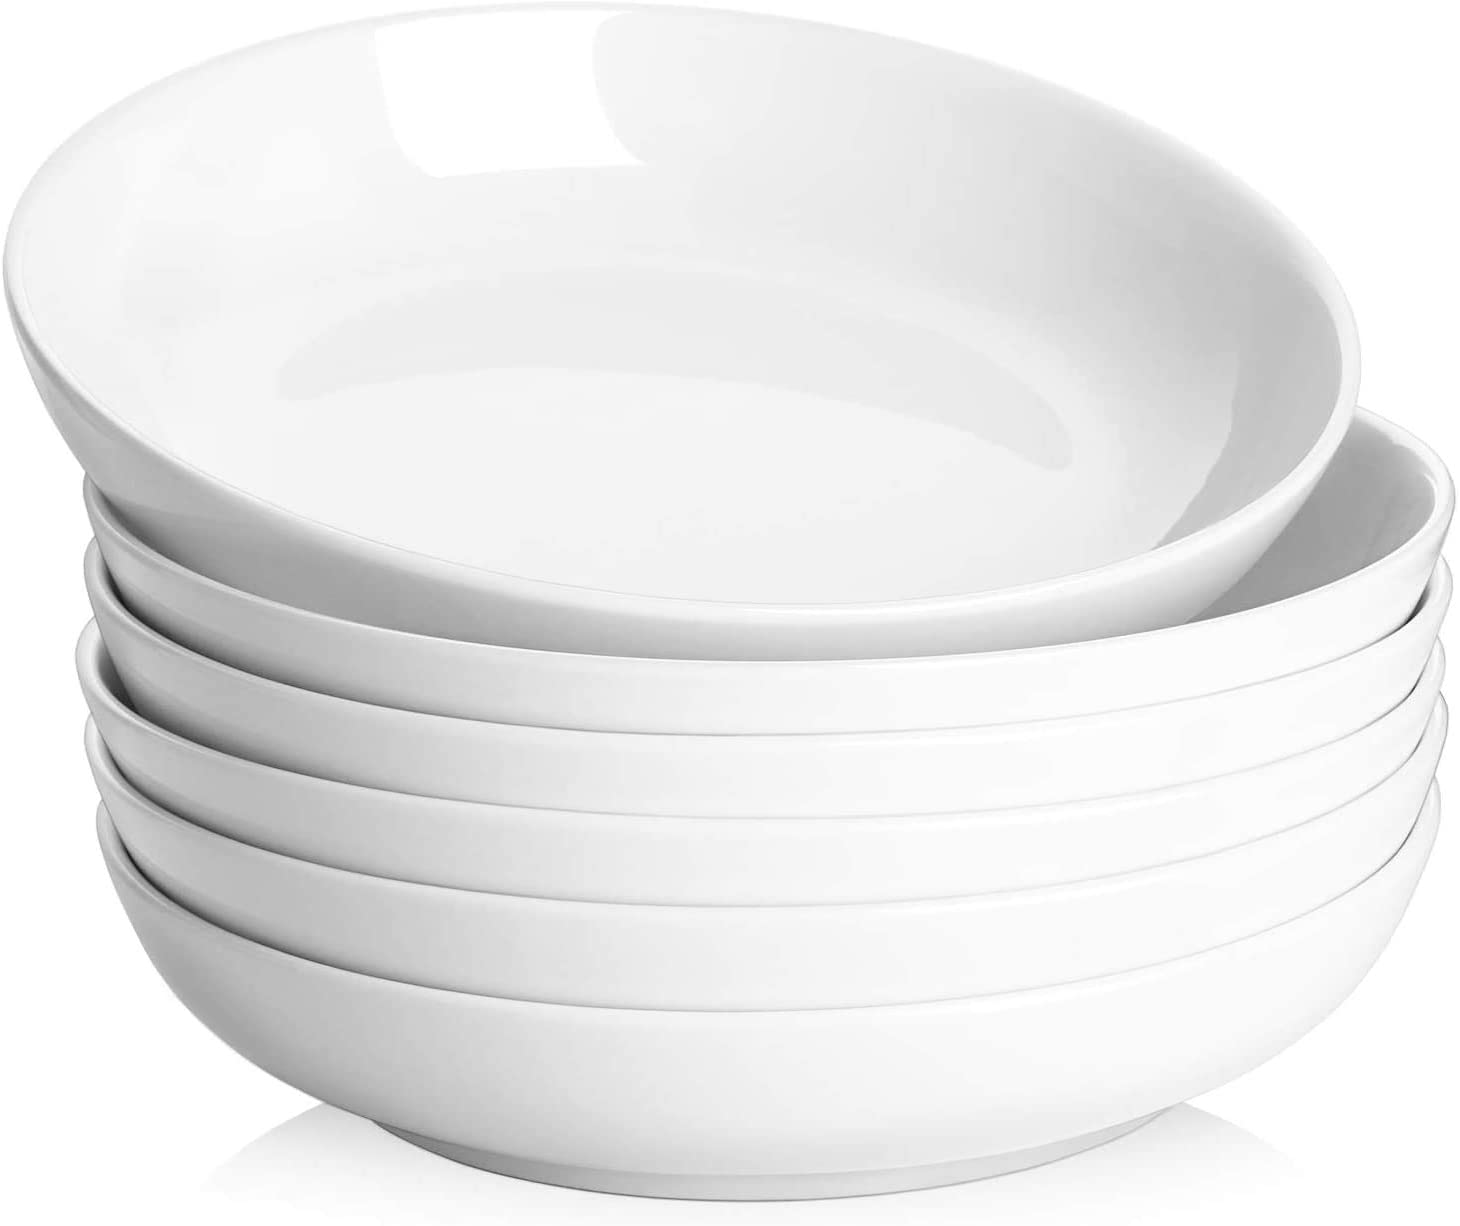 Y YHY Pasta Bowls,Large Salad Serving Bowls,White Soup Bowl Microwave Safe,Sturdy Porcelain